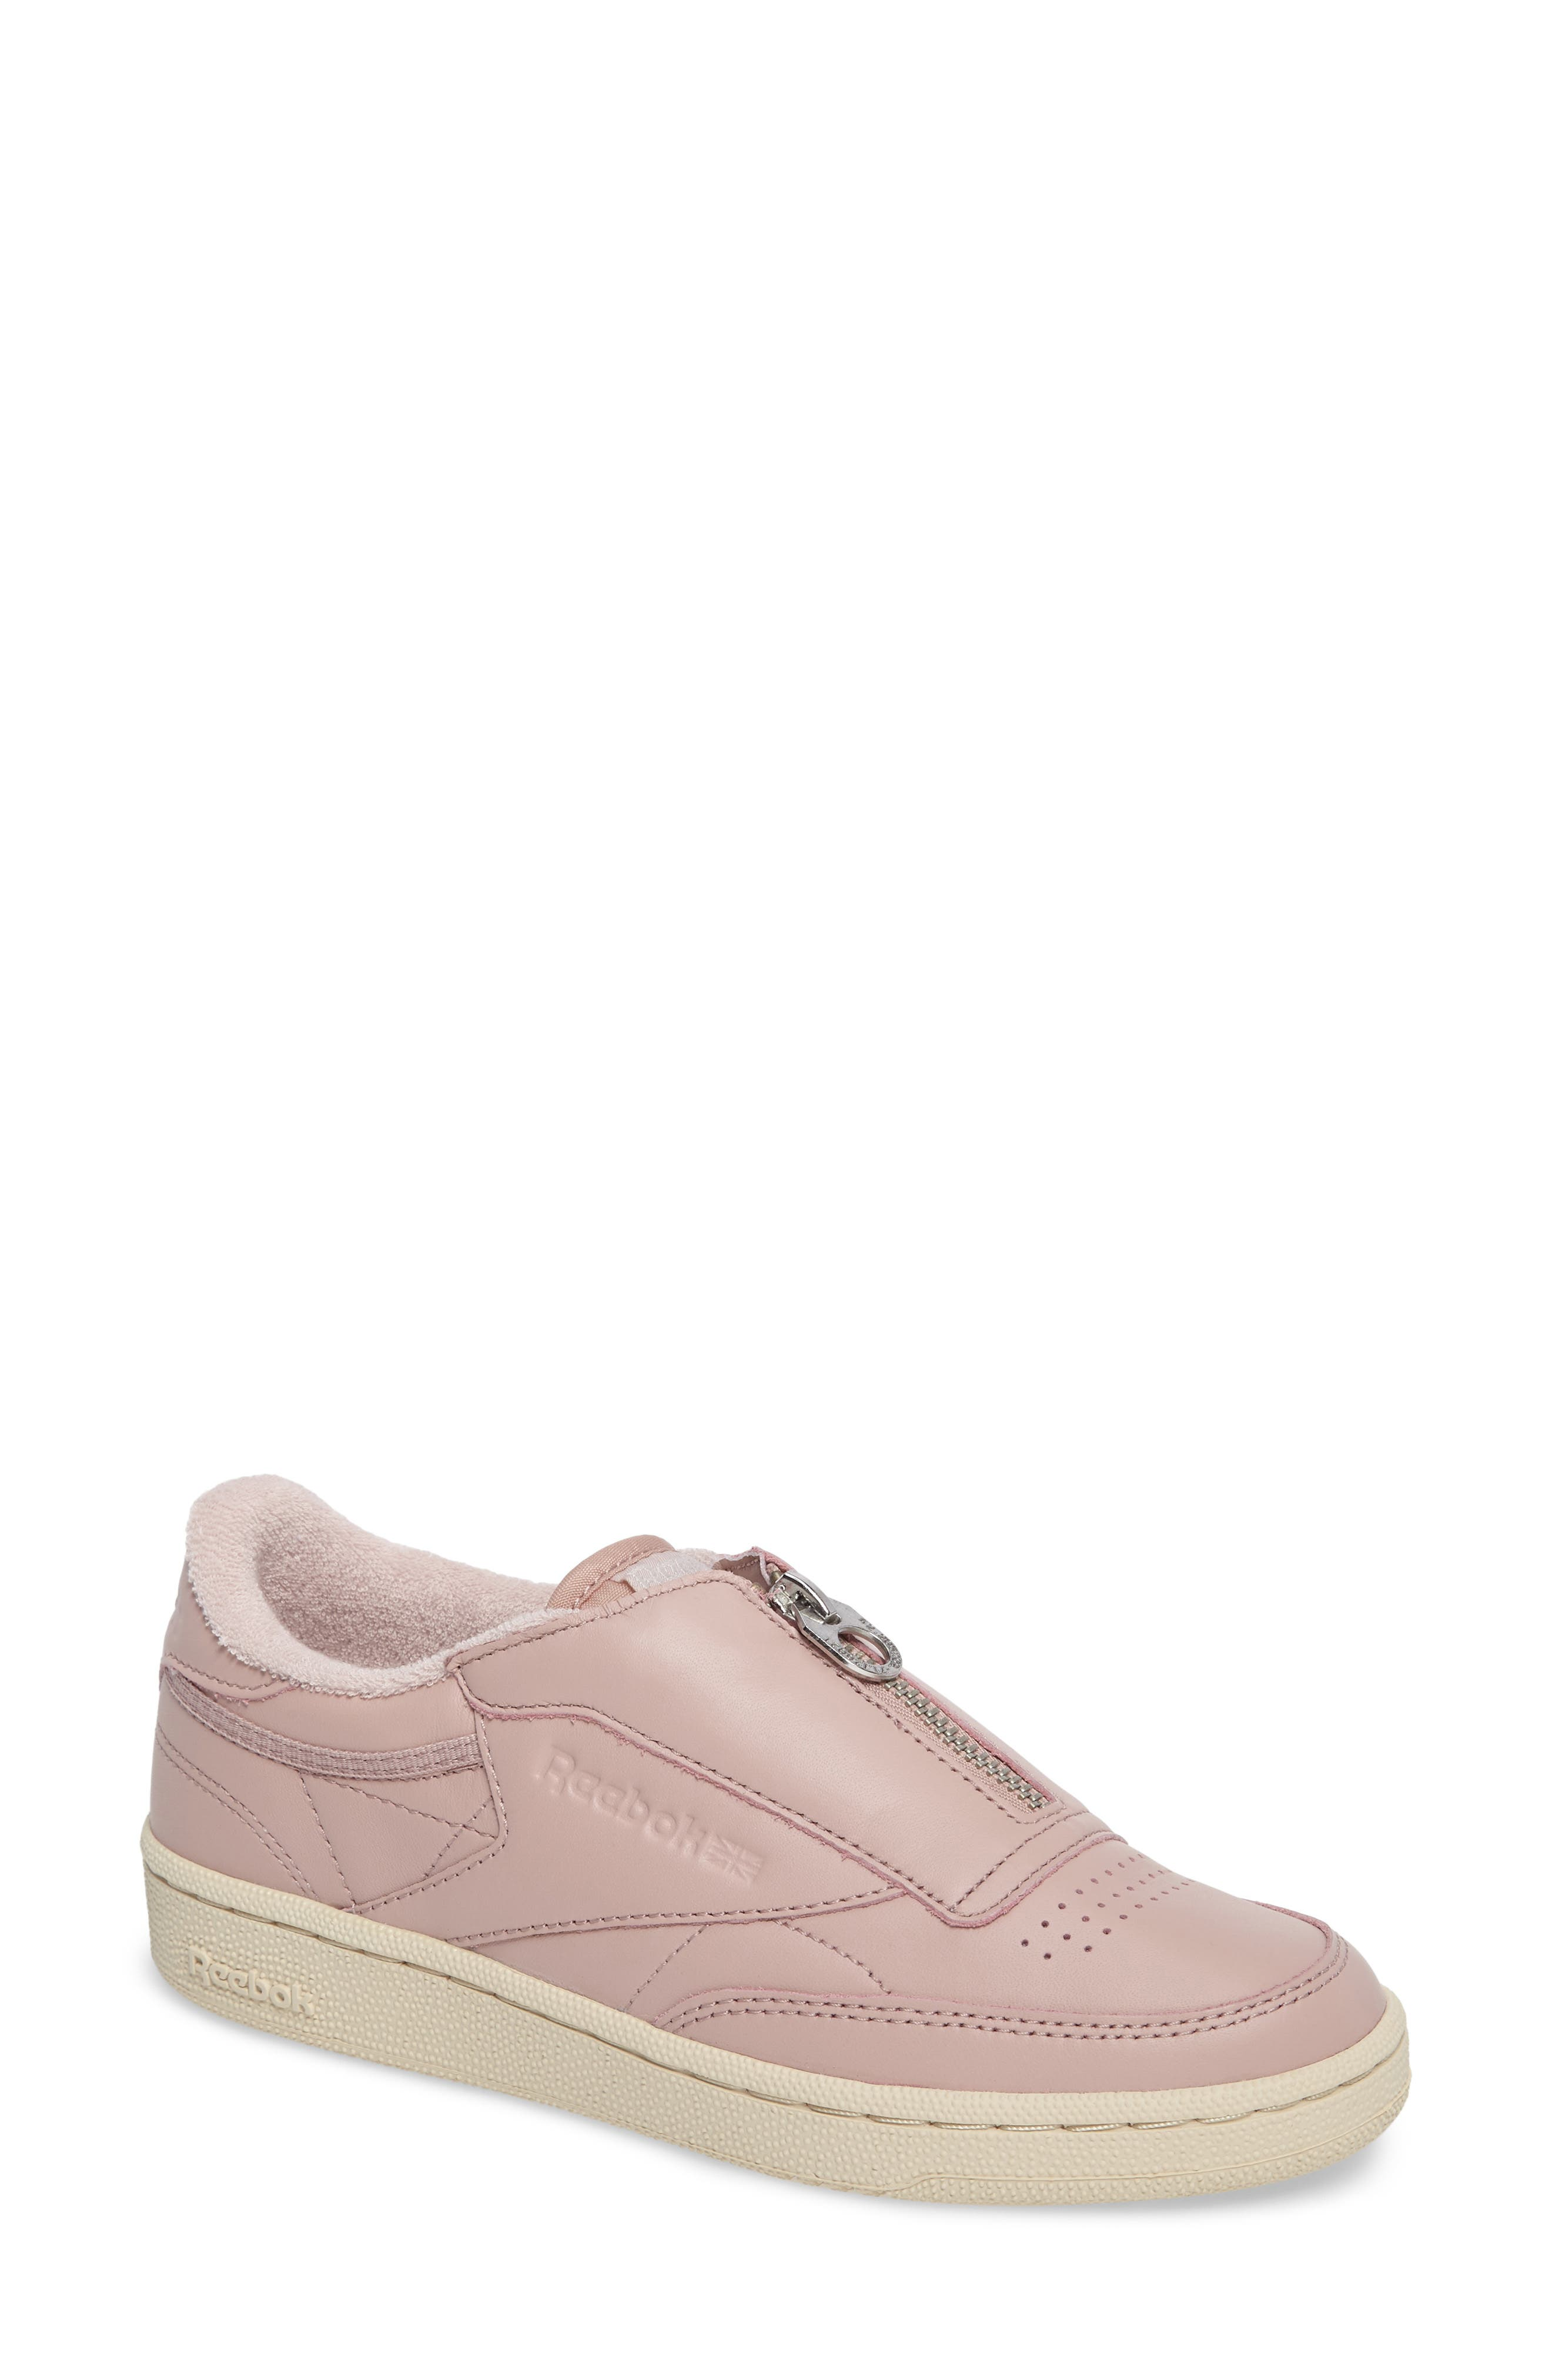 Main Image - Reebok Club C85 Sneaker (Women)